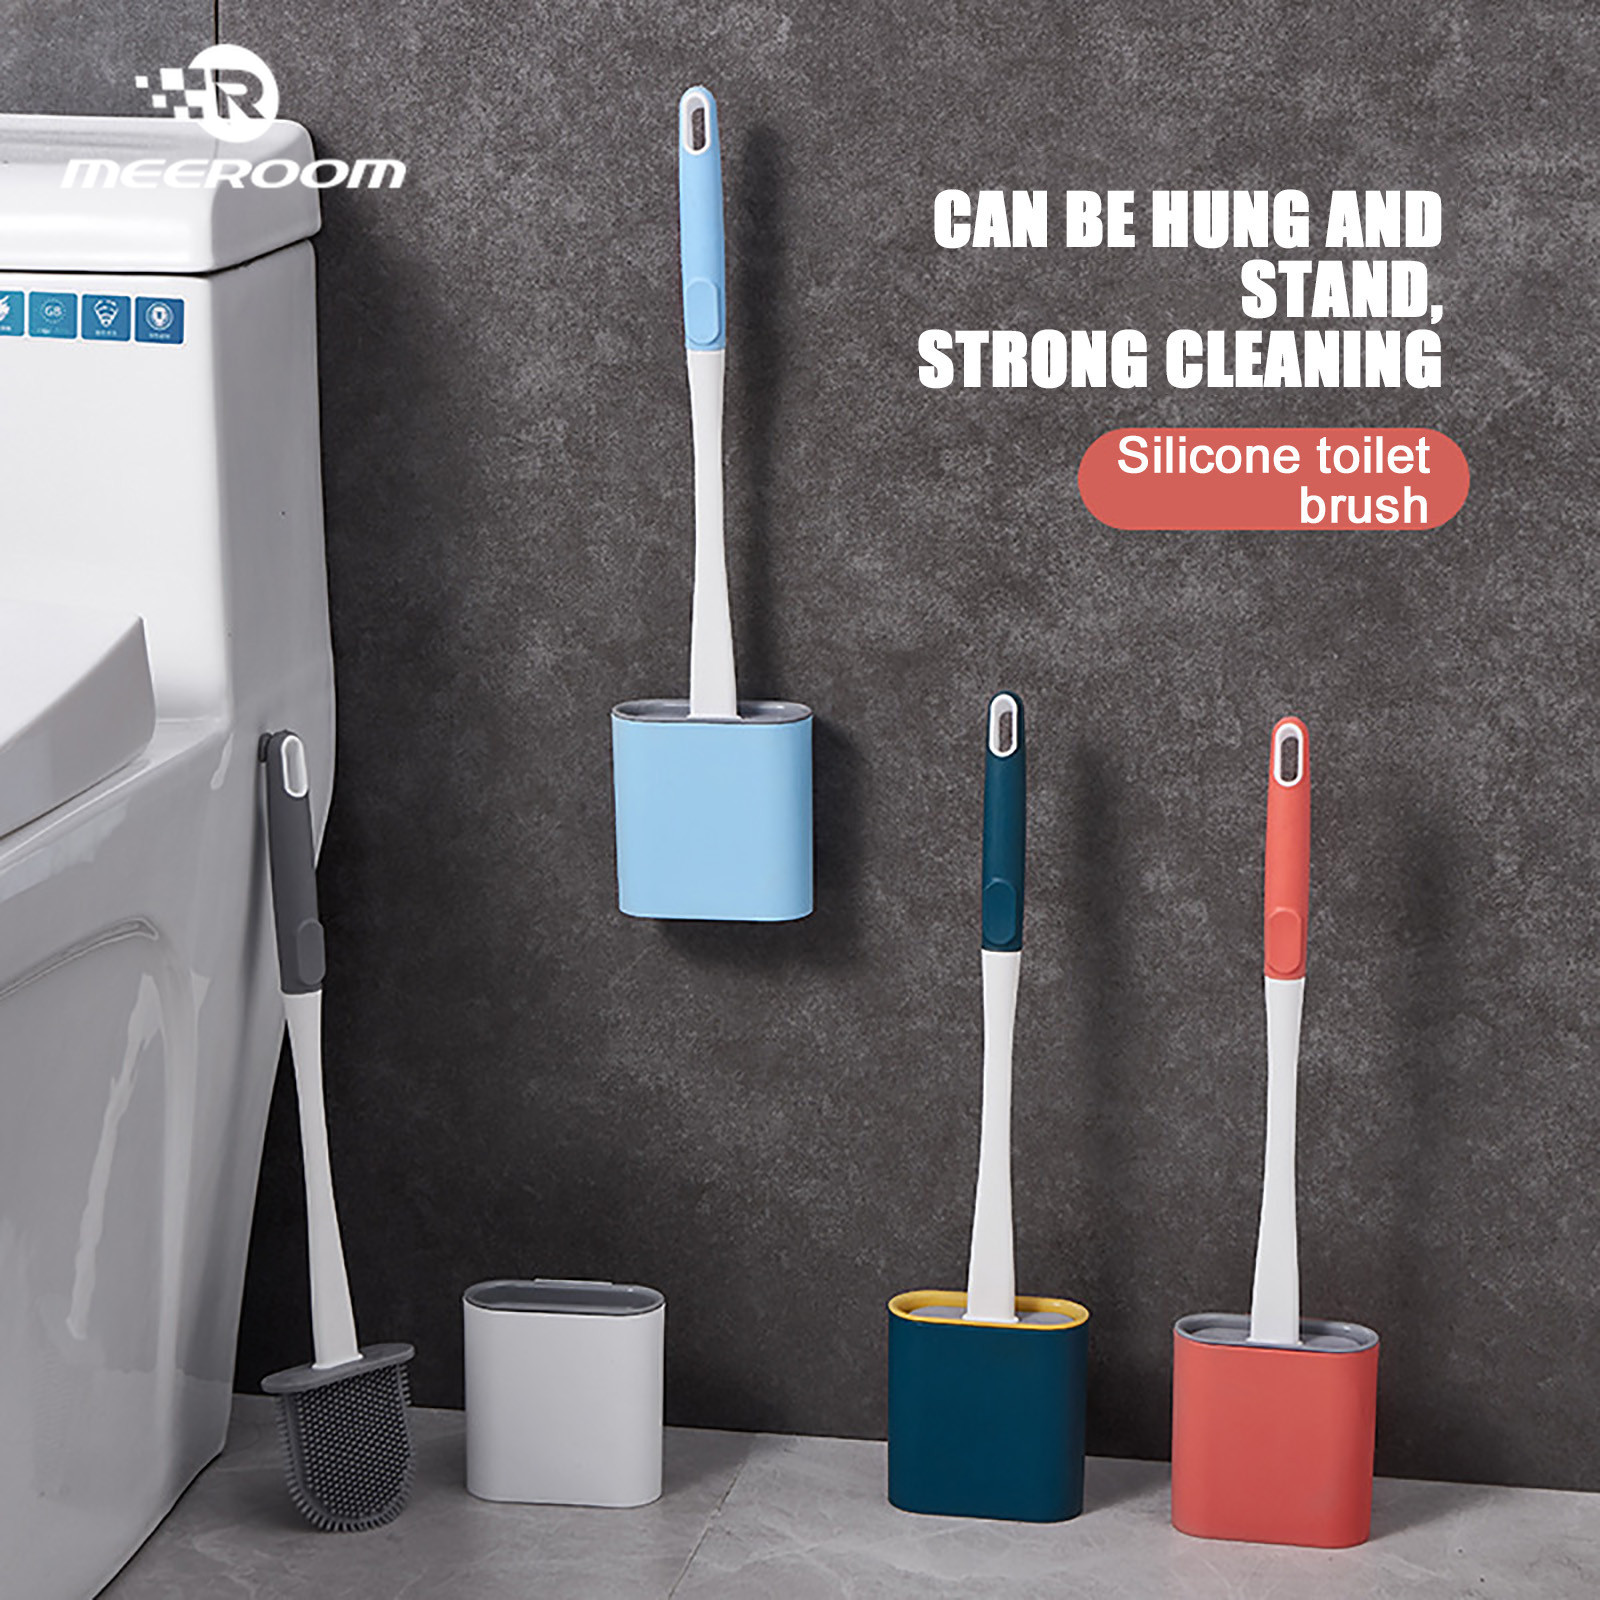 Toilet Brush No Dead Ends Flushing Toilet Silicone Brush Hanging Durable Bathroom Accessories Bathroom Cleaning Tools Brush Kit